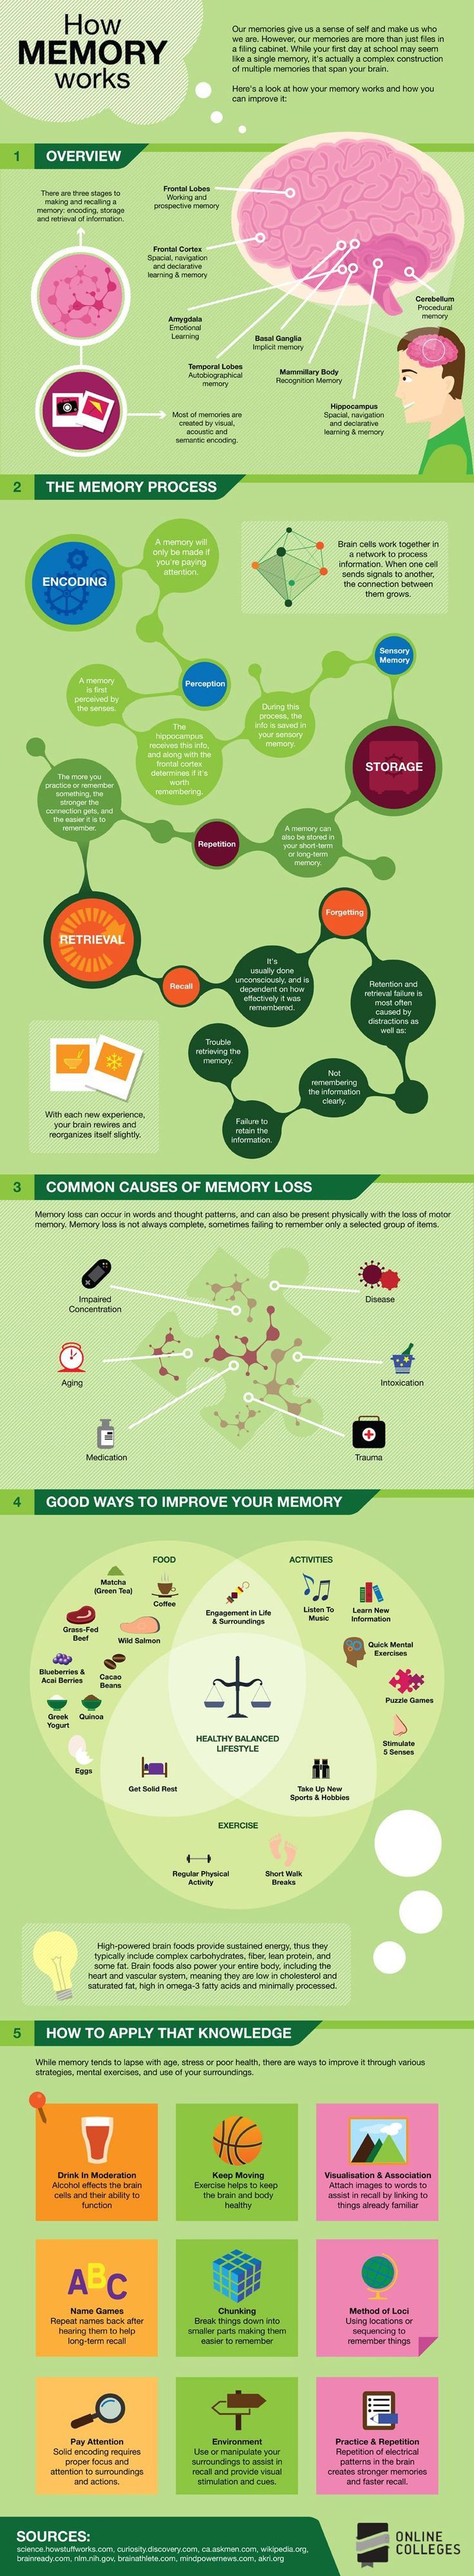 How Memory Works - a very helpful infographic - definitely gives you some ideas on how to tweak your study plan given how the brain works! #SAT #ACT #learn #study #test #teach #college